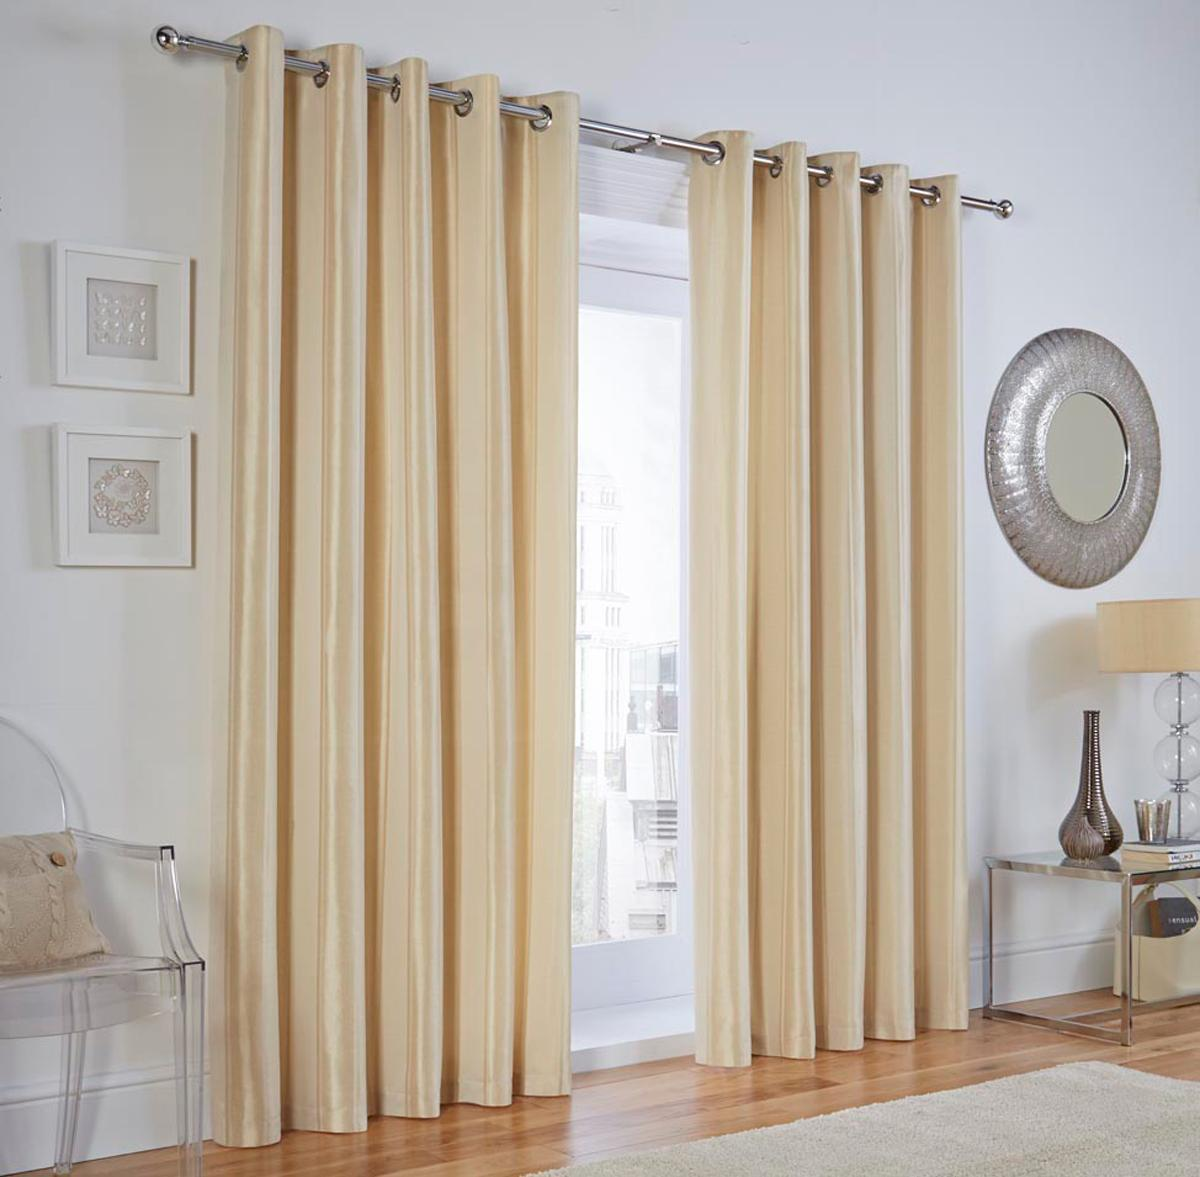 Natural Linwood Stripe Ready Made Lined Eyelet Curtains